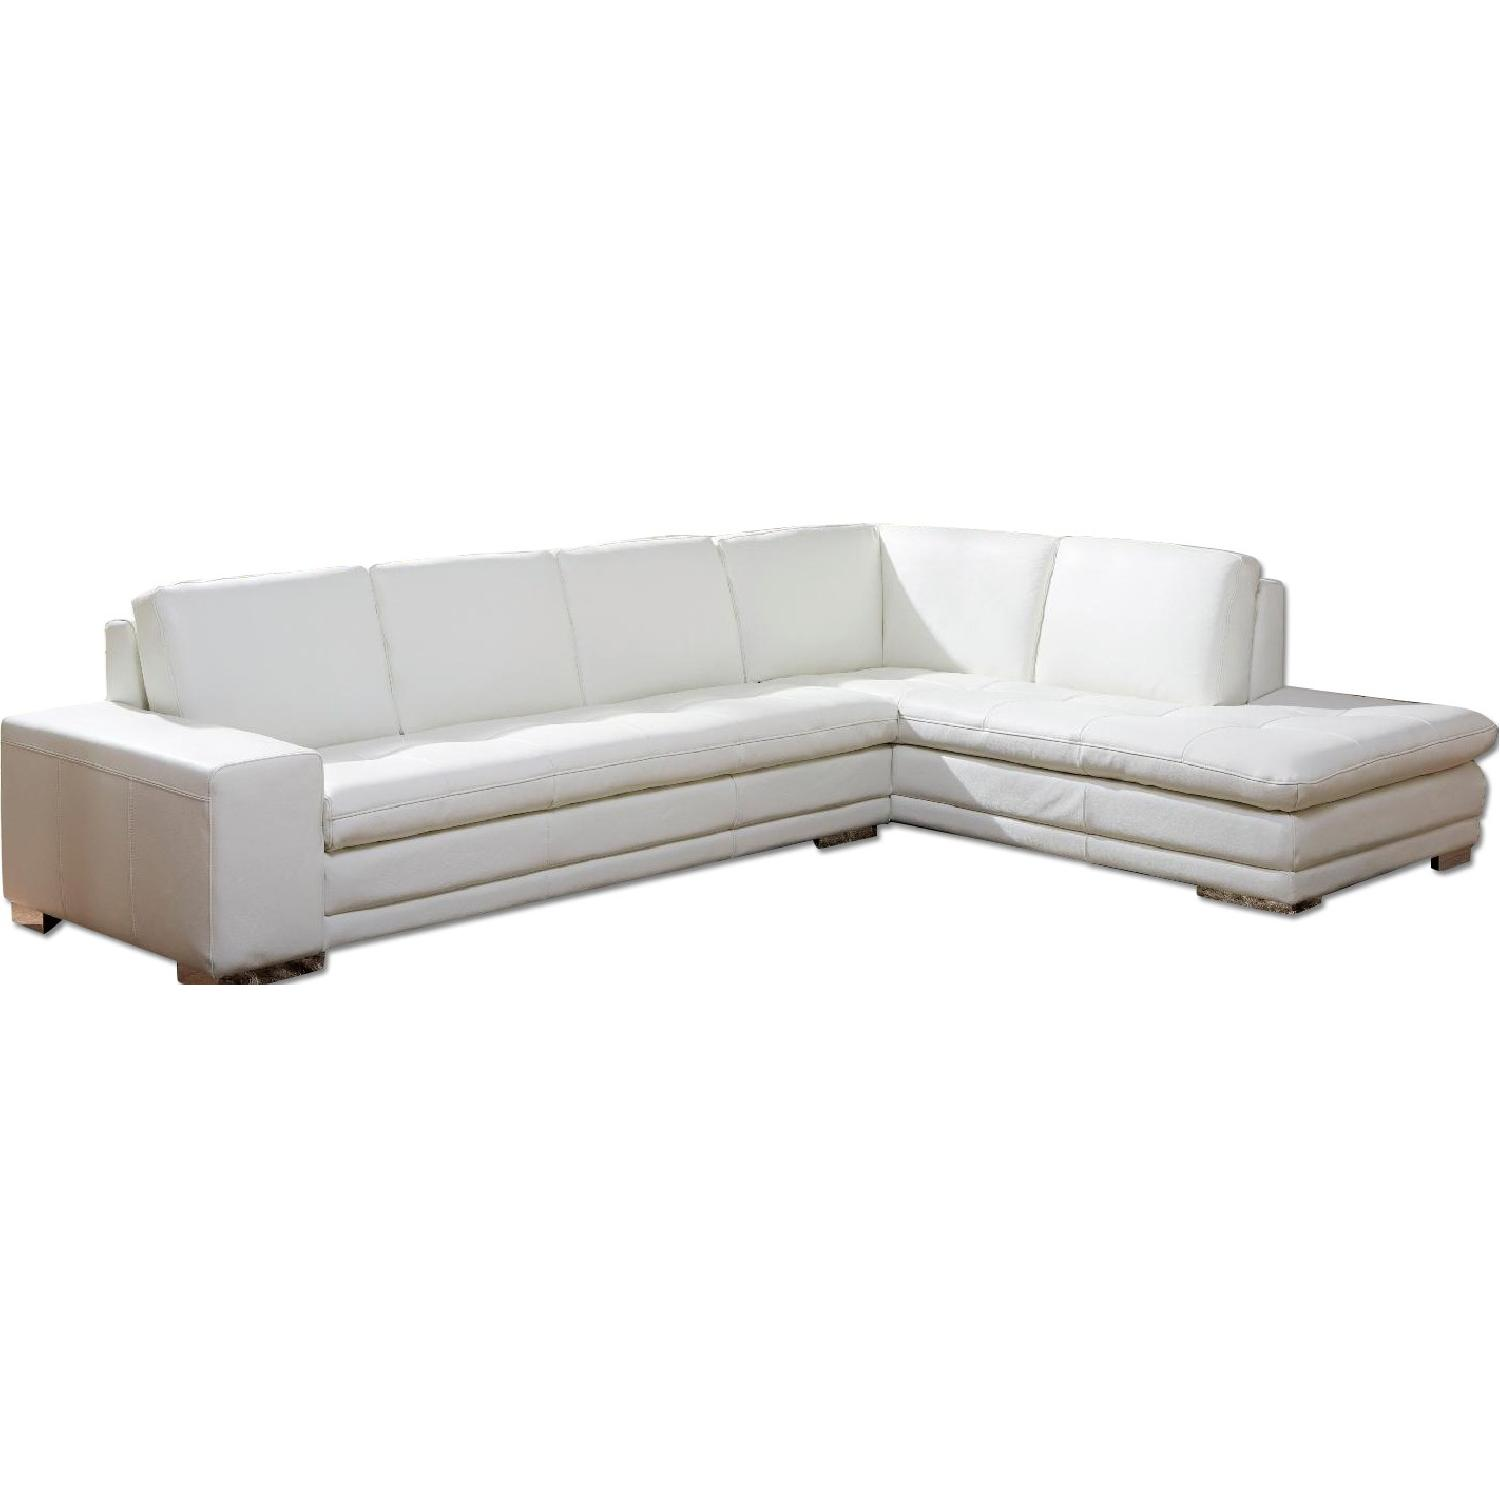 Top Grain Full Leather Modern Sectional Sofa in White w/ Tufted Seats & Chrome Legs